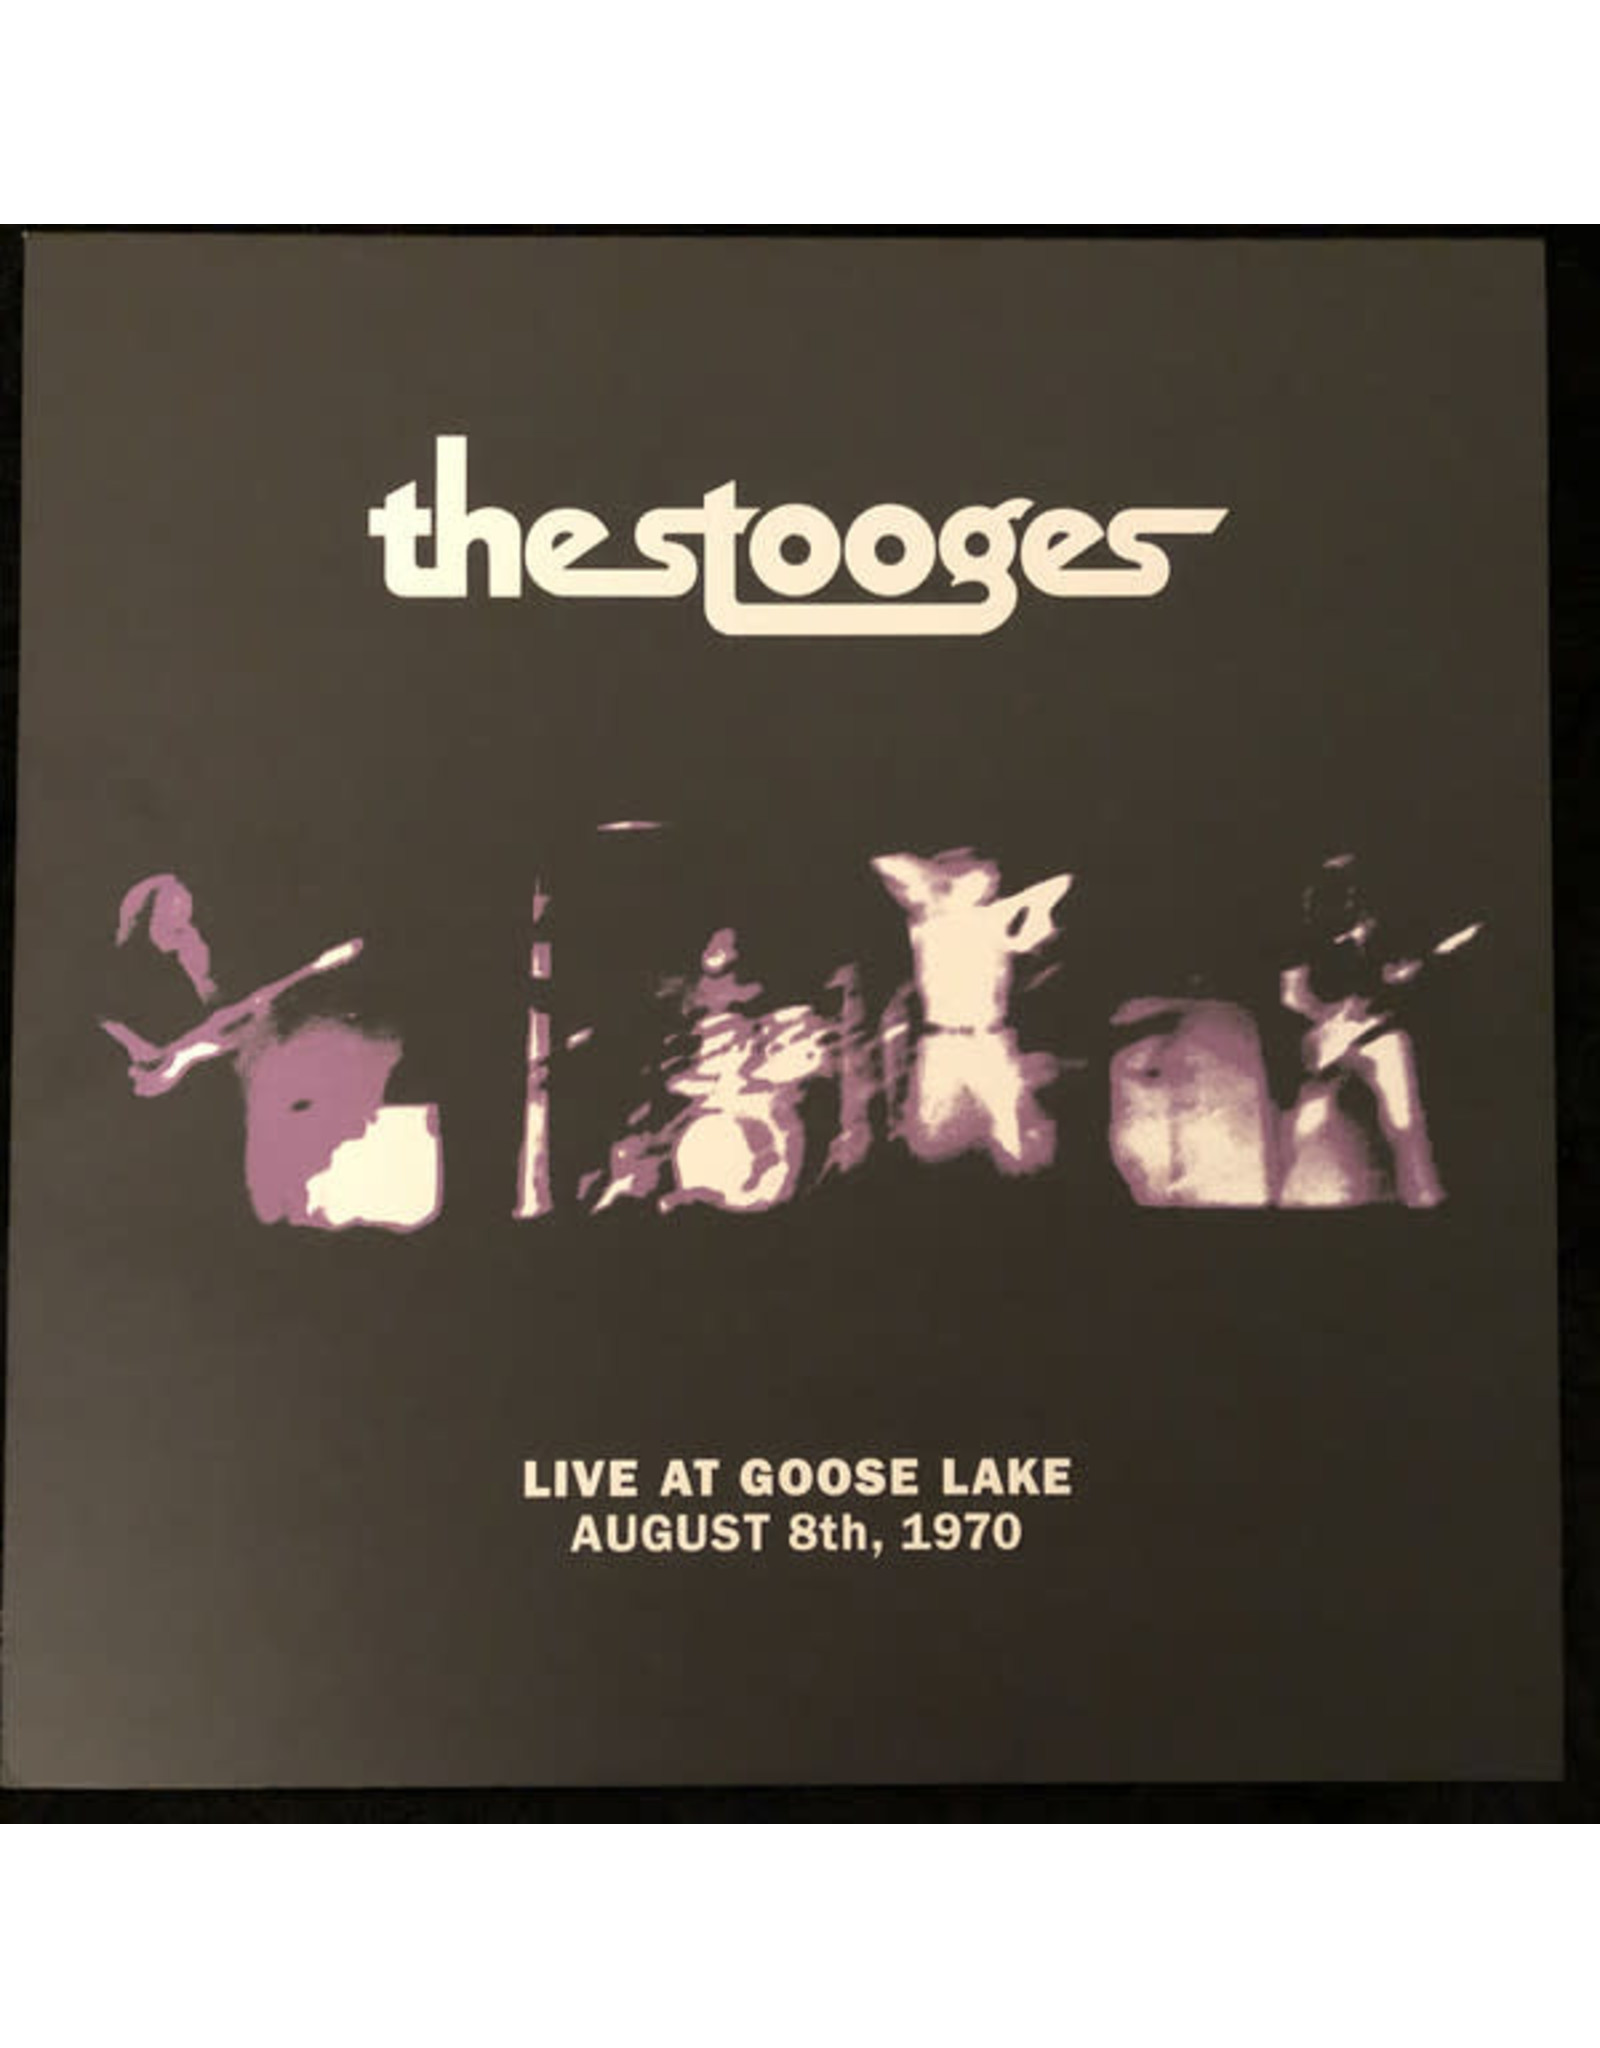 Stooges, The - Live at Goose Lake: August 8th, 1970 LP